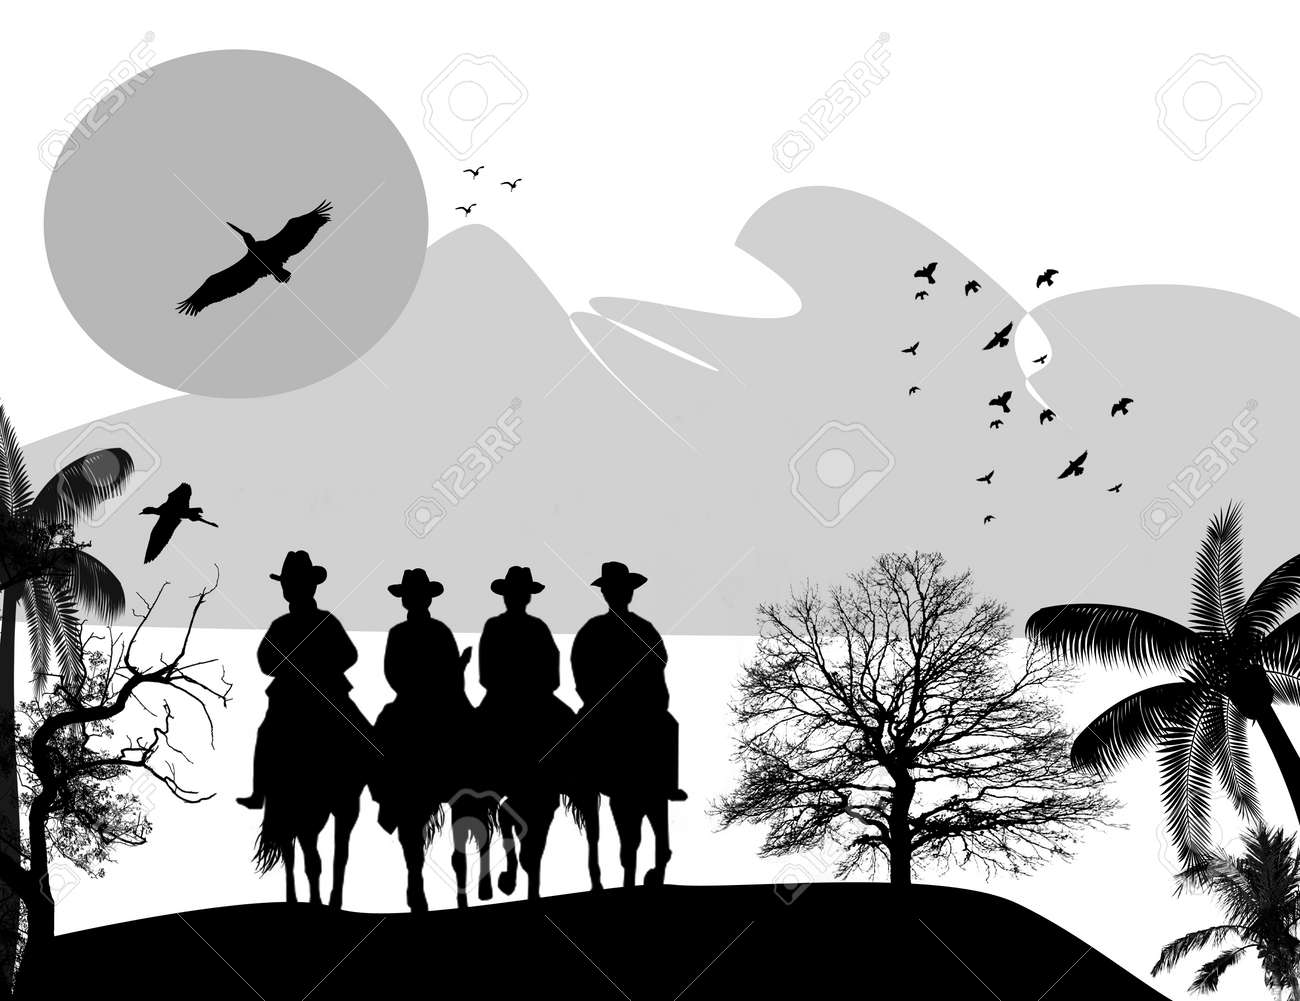 Western Horse Silhouettes Silhouette Cowboys With Horses